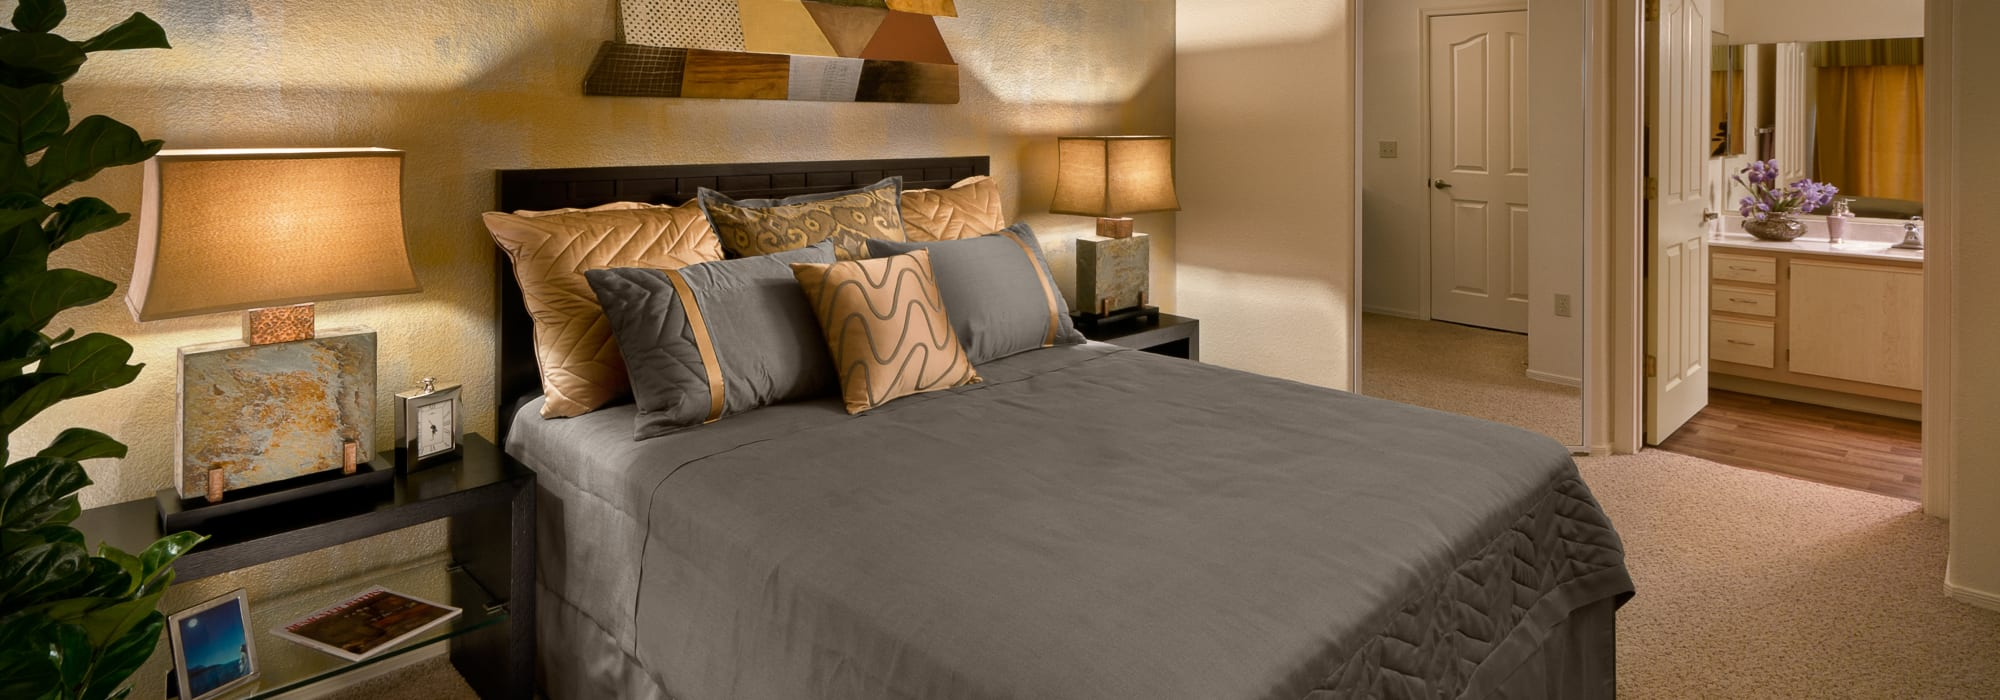 Gorgeously decorated master bedroom in a model home at San Palmilla in Tempe, Arizona